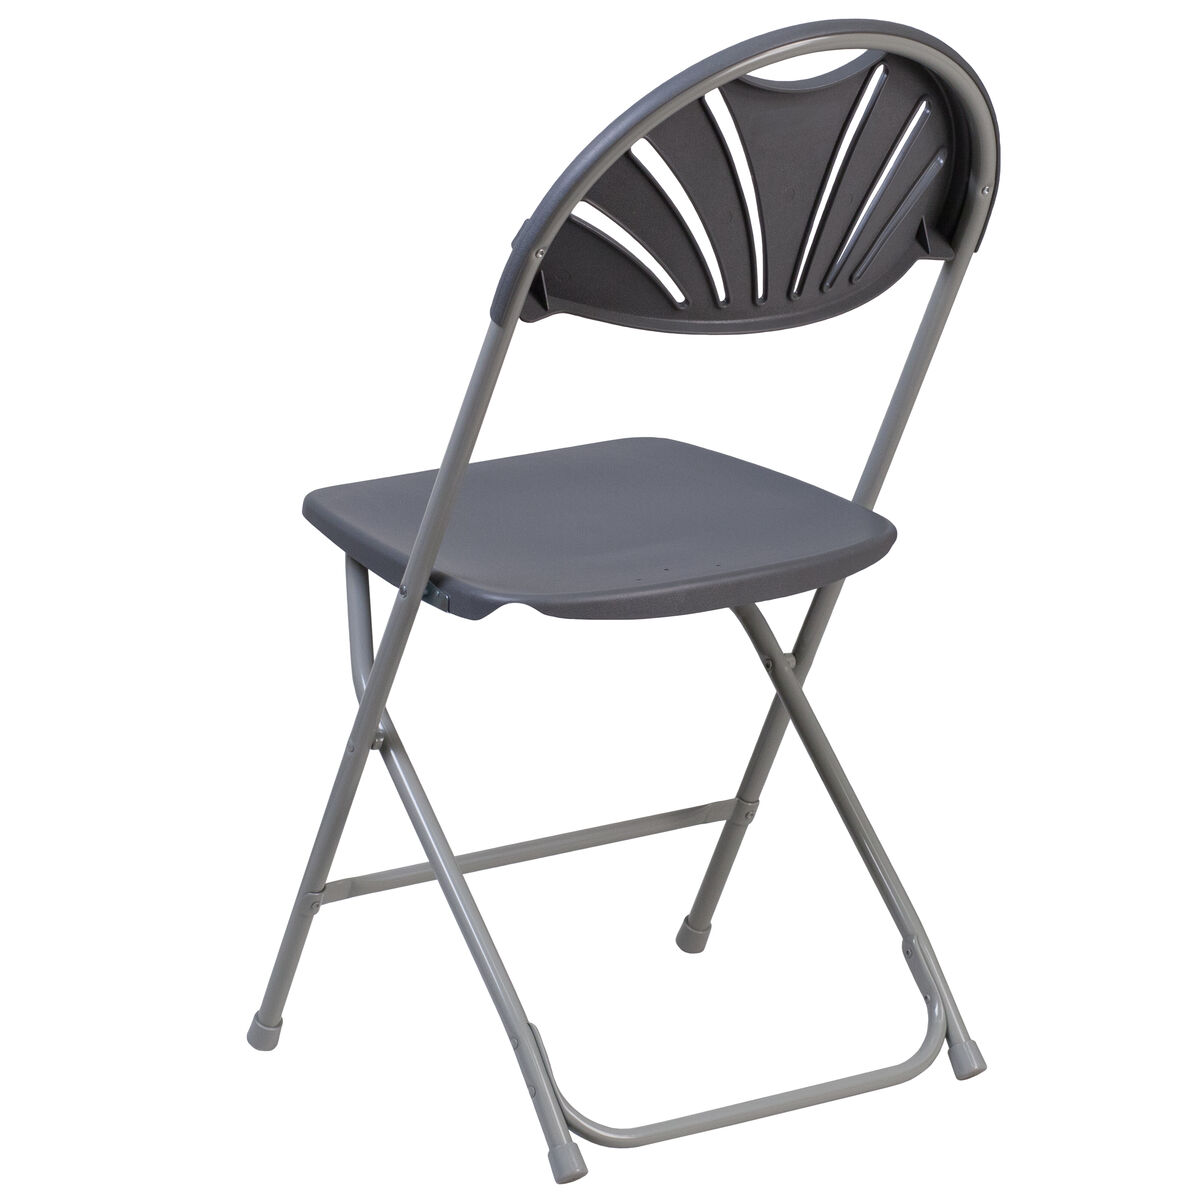 Prime Hercules Series 650 Lb Capacity Charcoal Plastic Fan Back Folding Chair Andrewgaddart Wooden Chair Designs For Living Room Andrewgaddartcom